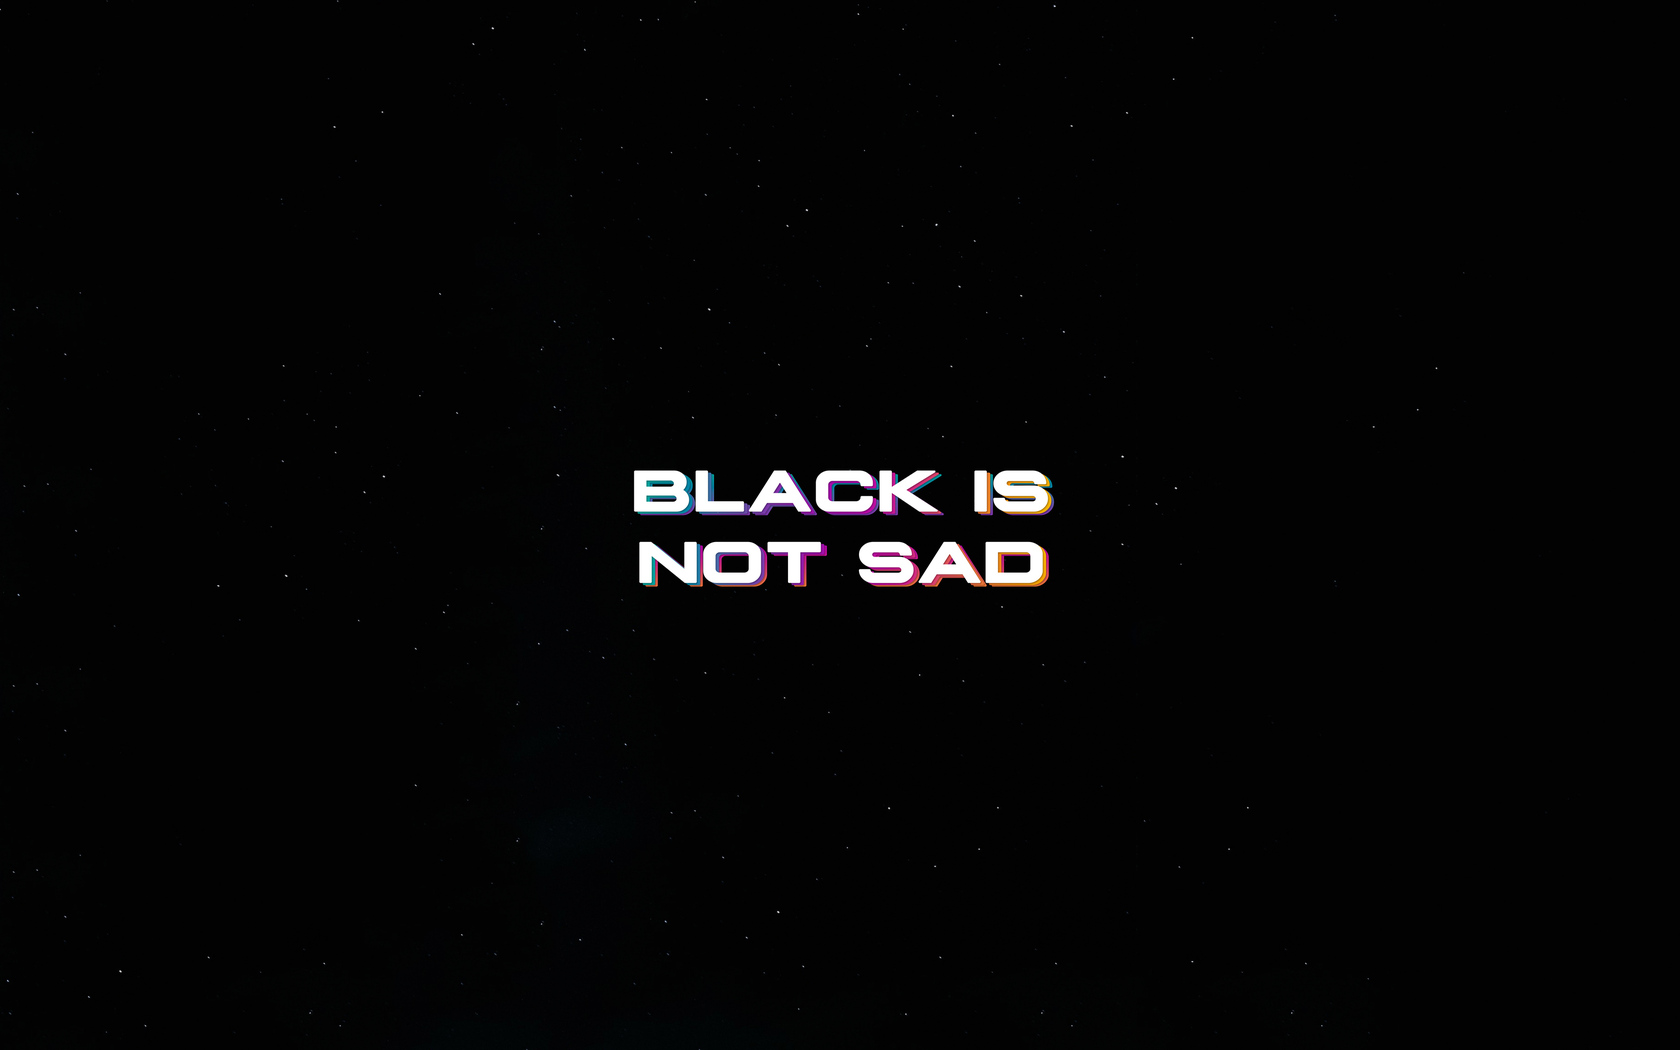 black-is-not-sad-typography-4k-8l.jpg